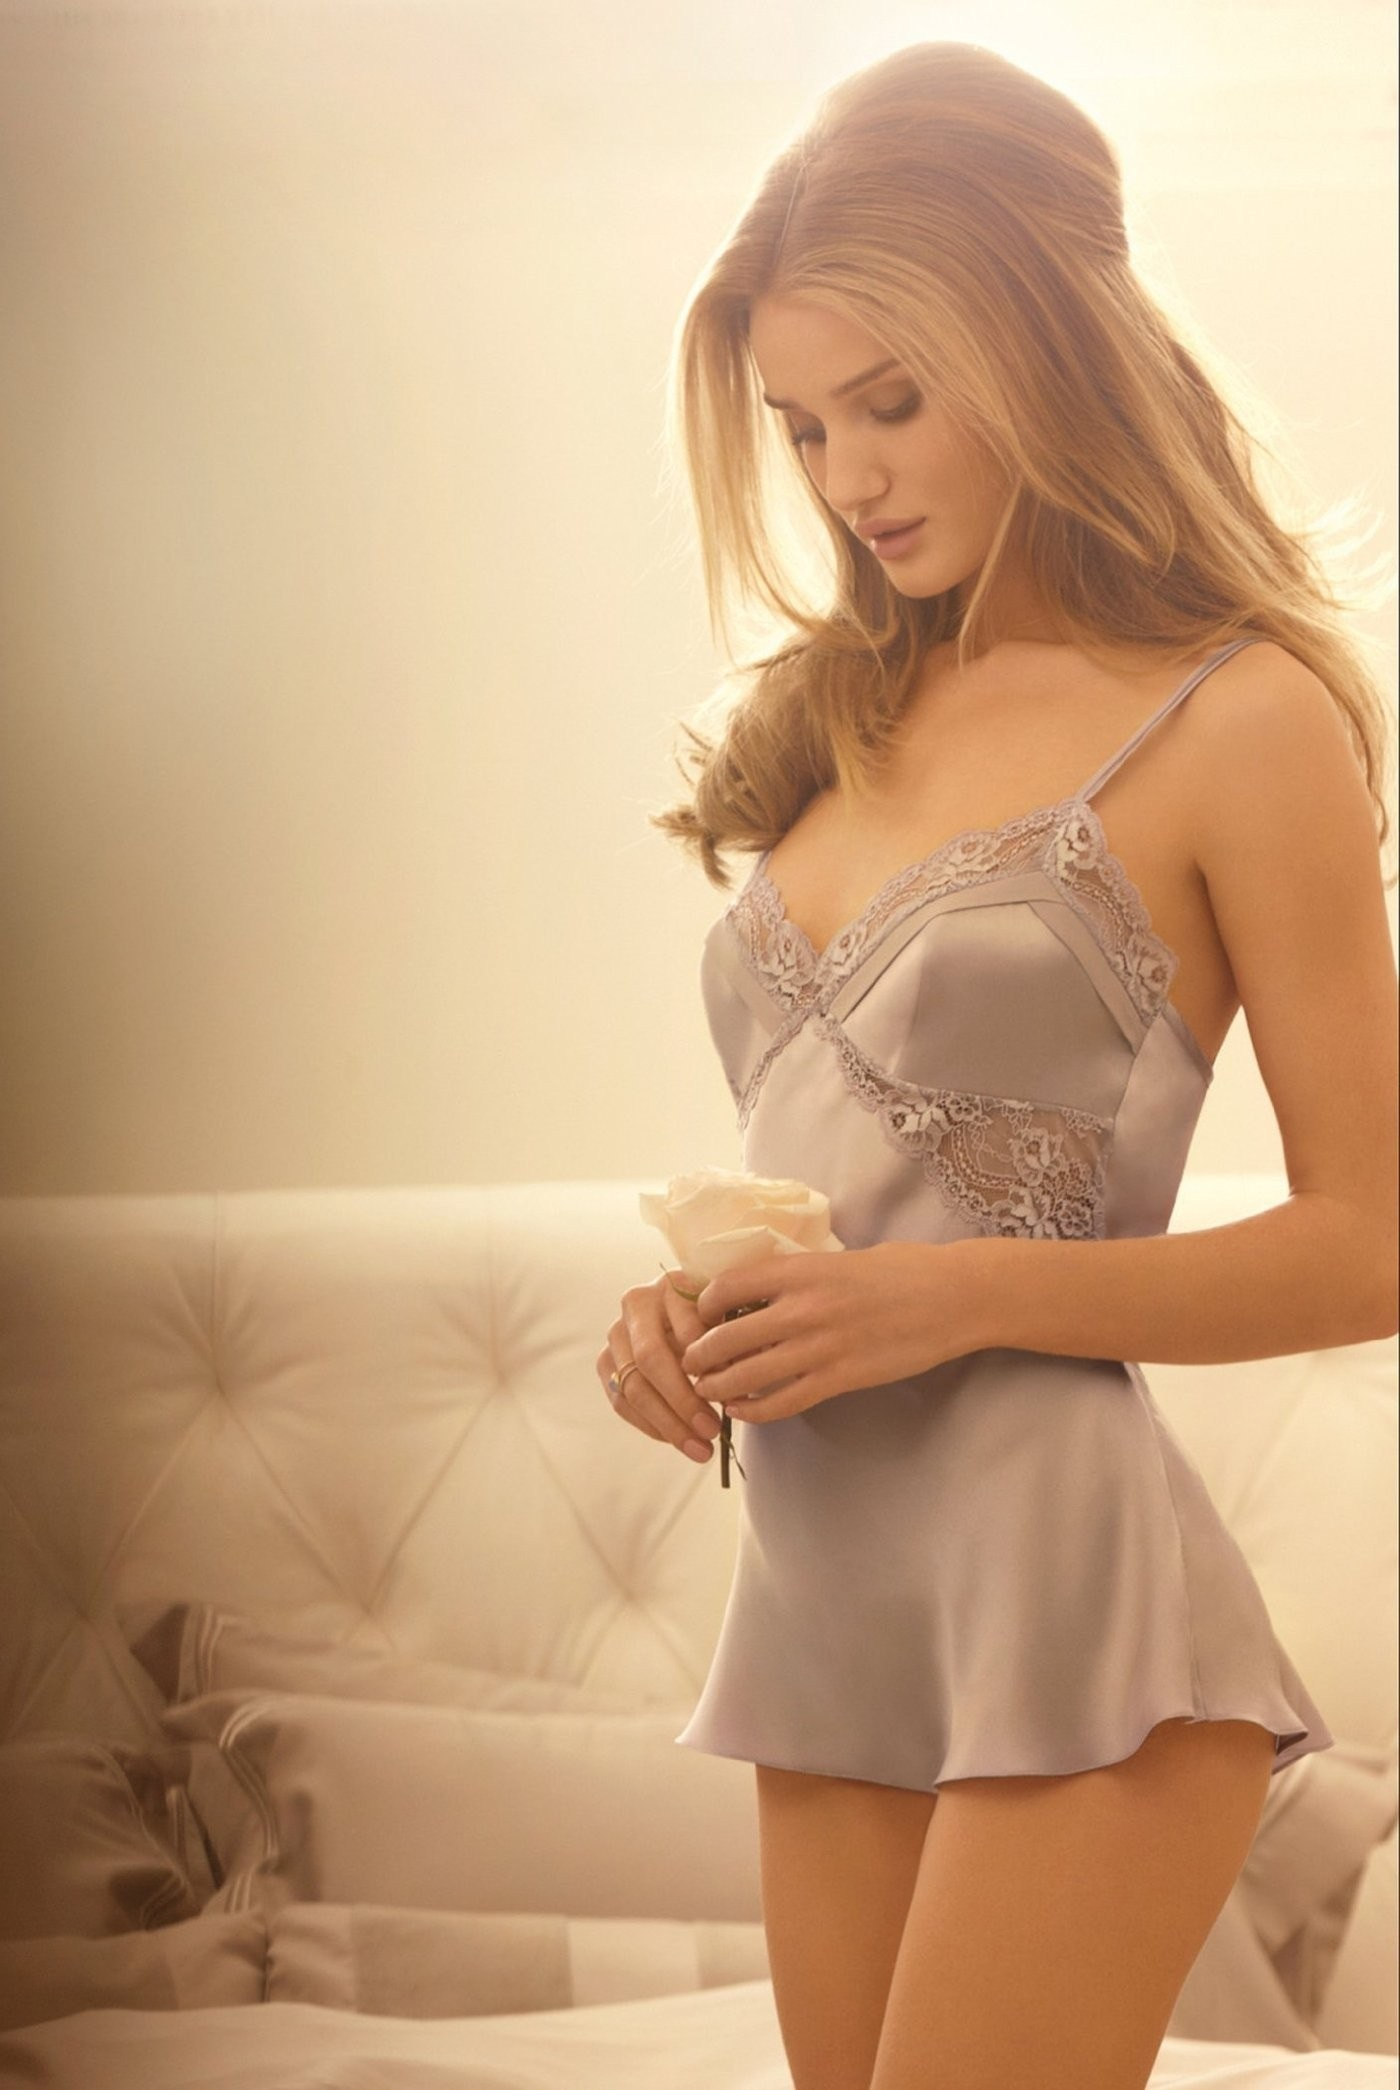 Lingerie Collection Marks Spencer Autograph Of Rosie Huntington Whiteley Hot